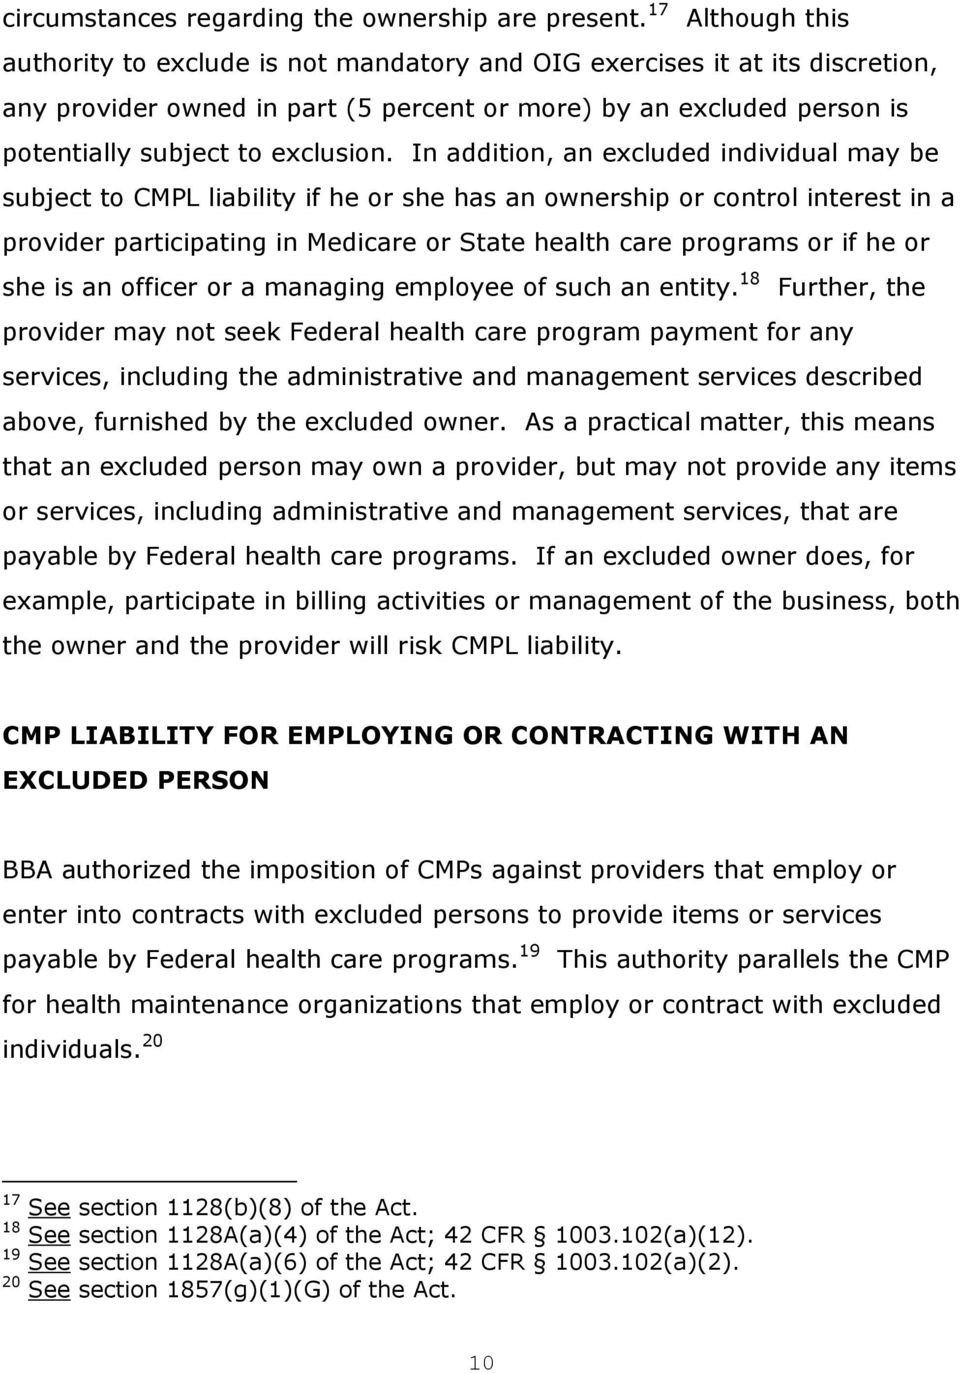 In addition, an excluded individual may be subject to CMPL liability if he or she has an ownership or control interest in a provider participating in Medicare or State health care programs or if he